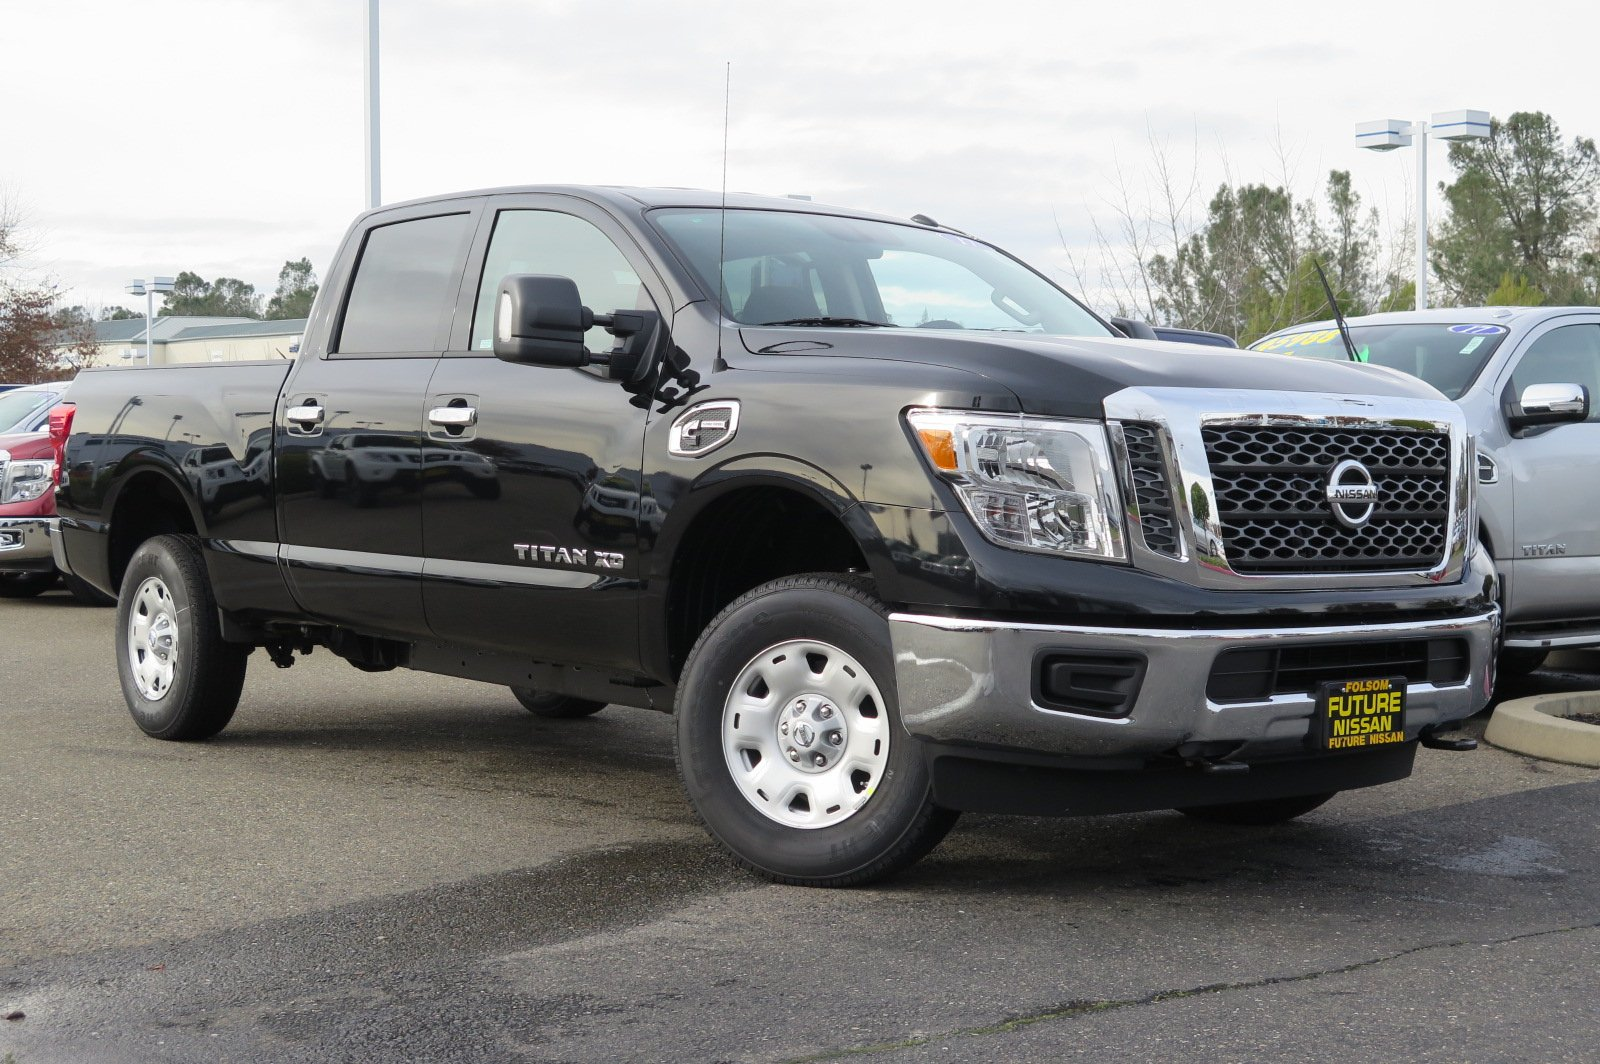 new 2017 nissan titan xd sv crew cab pickup in roseville f10915 future nissan of roseville. Black Bedroom Furniture Sets. Home Design Ideas